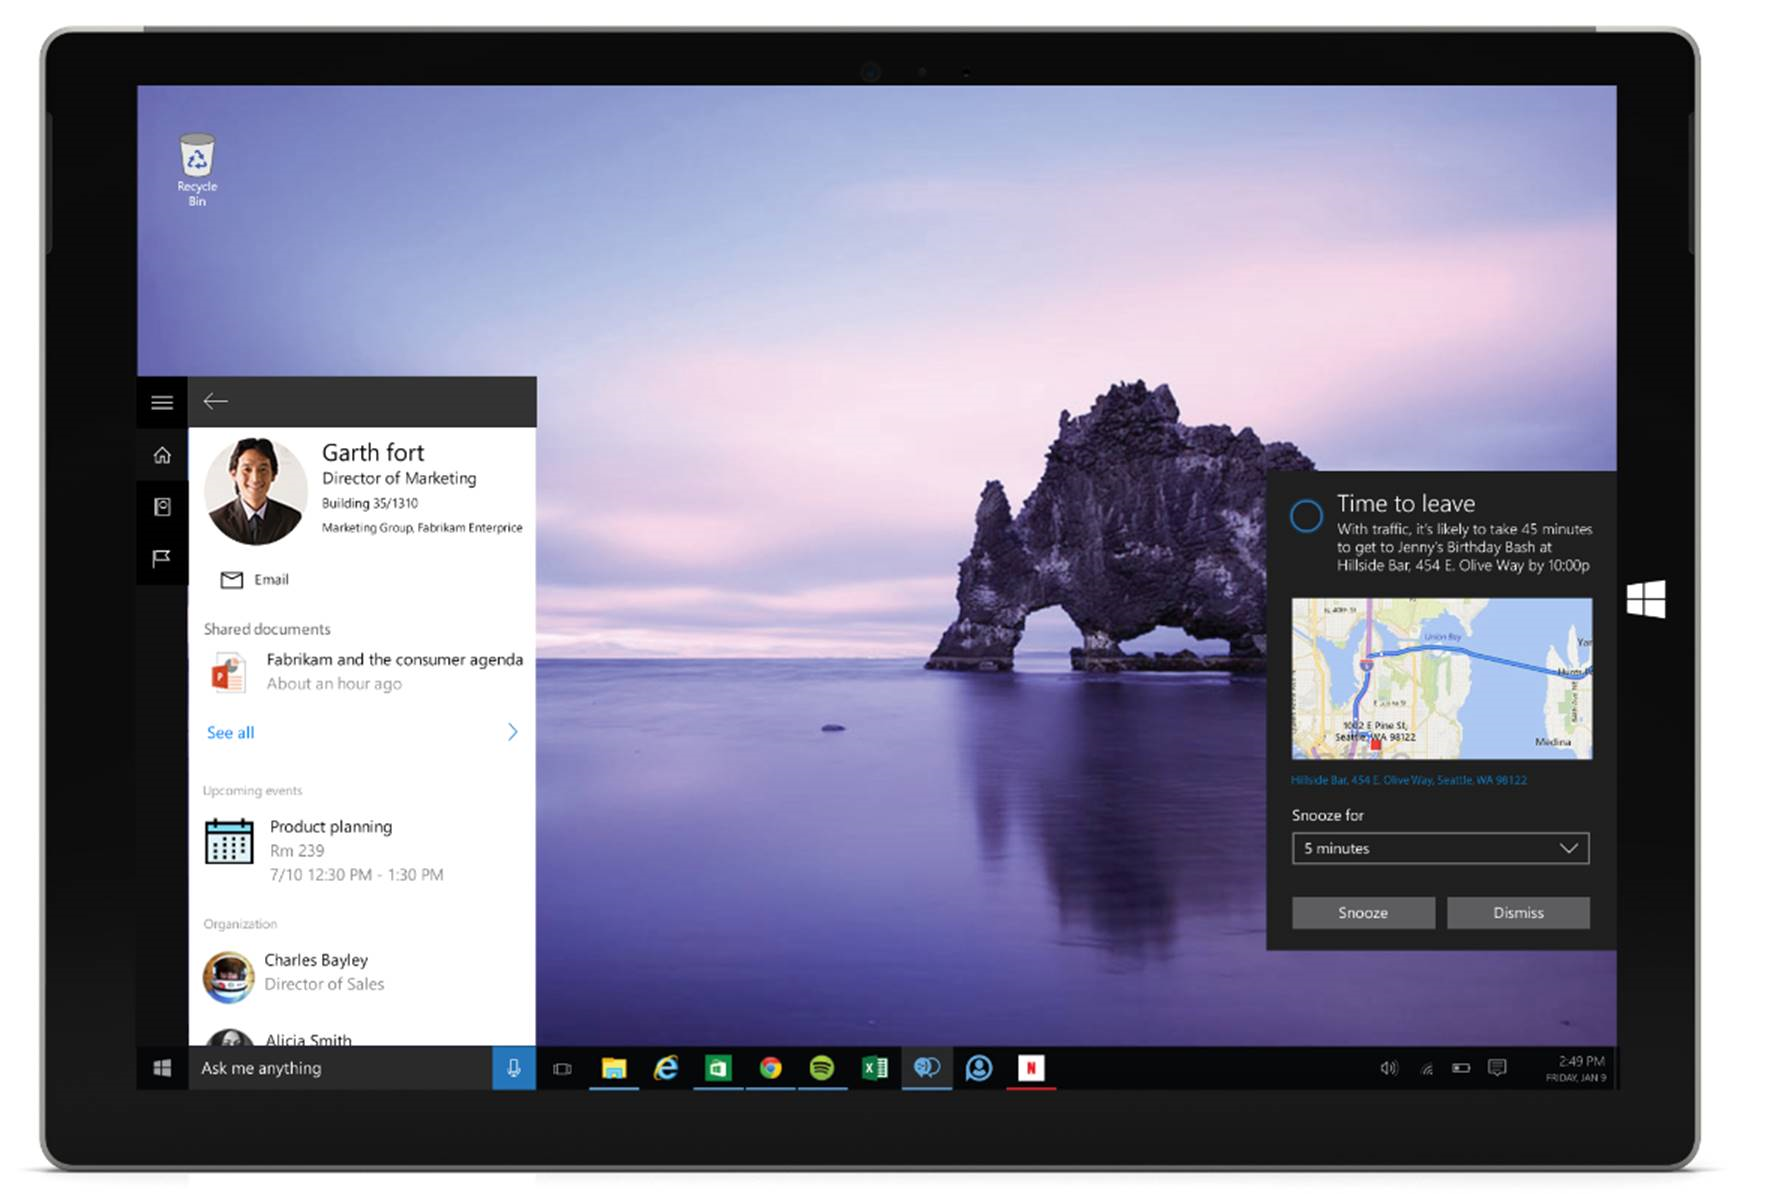 Microsoft's Cortana Now Shown With Office 365 Integration With Rich Insights